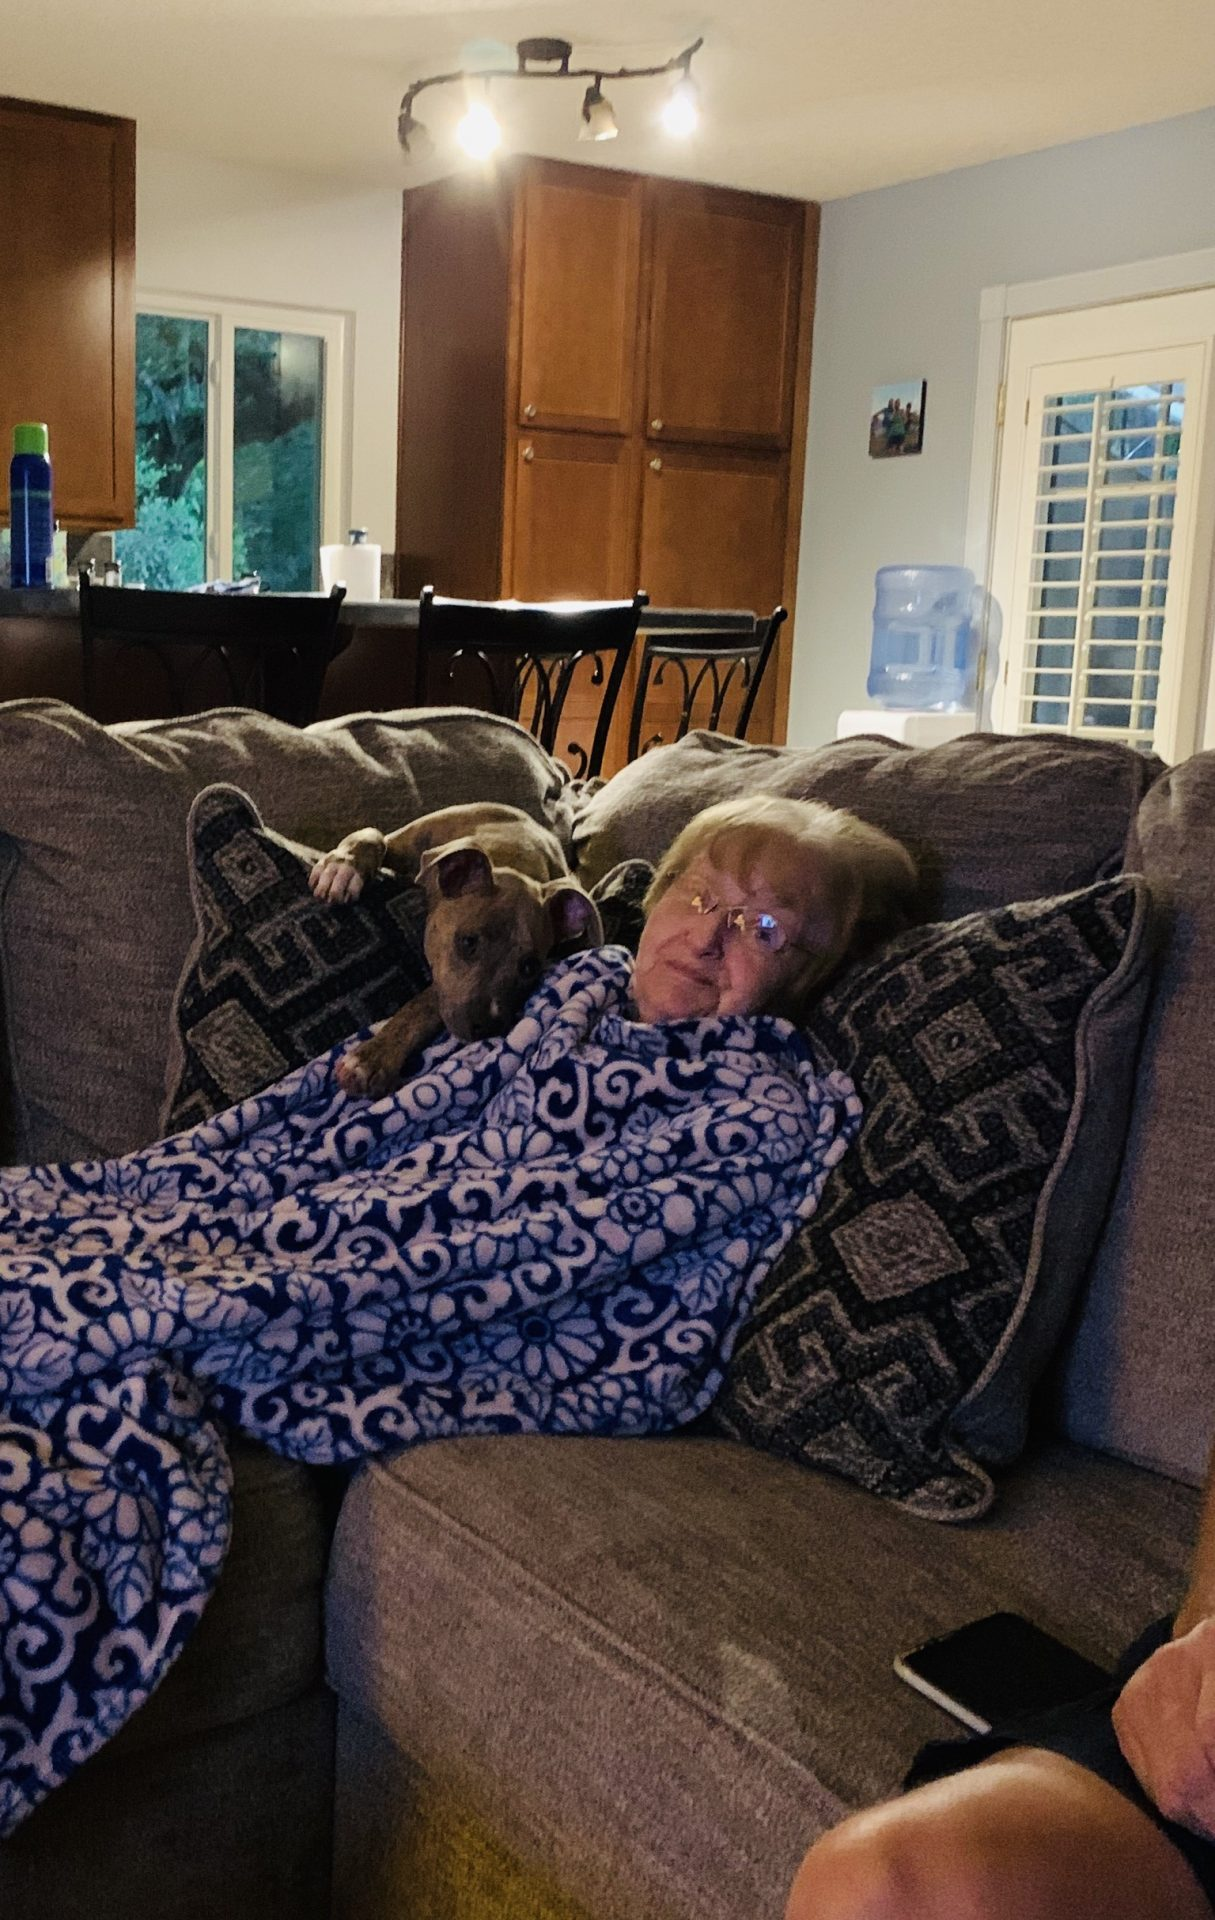 Willow loved hanging with grandma